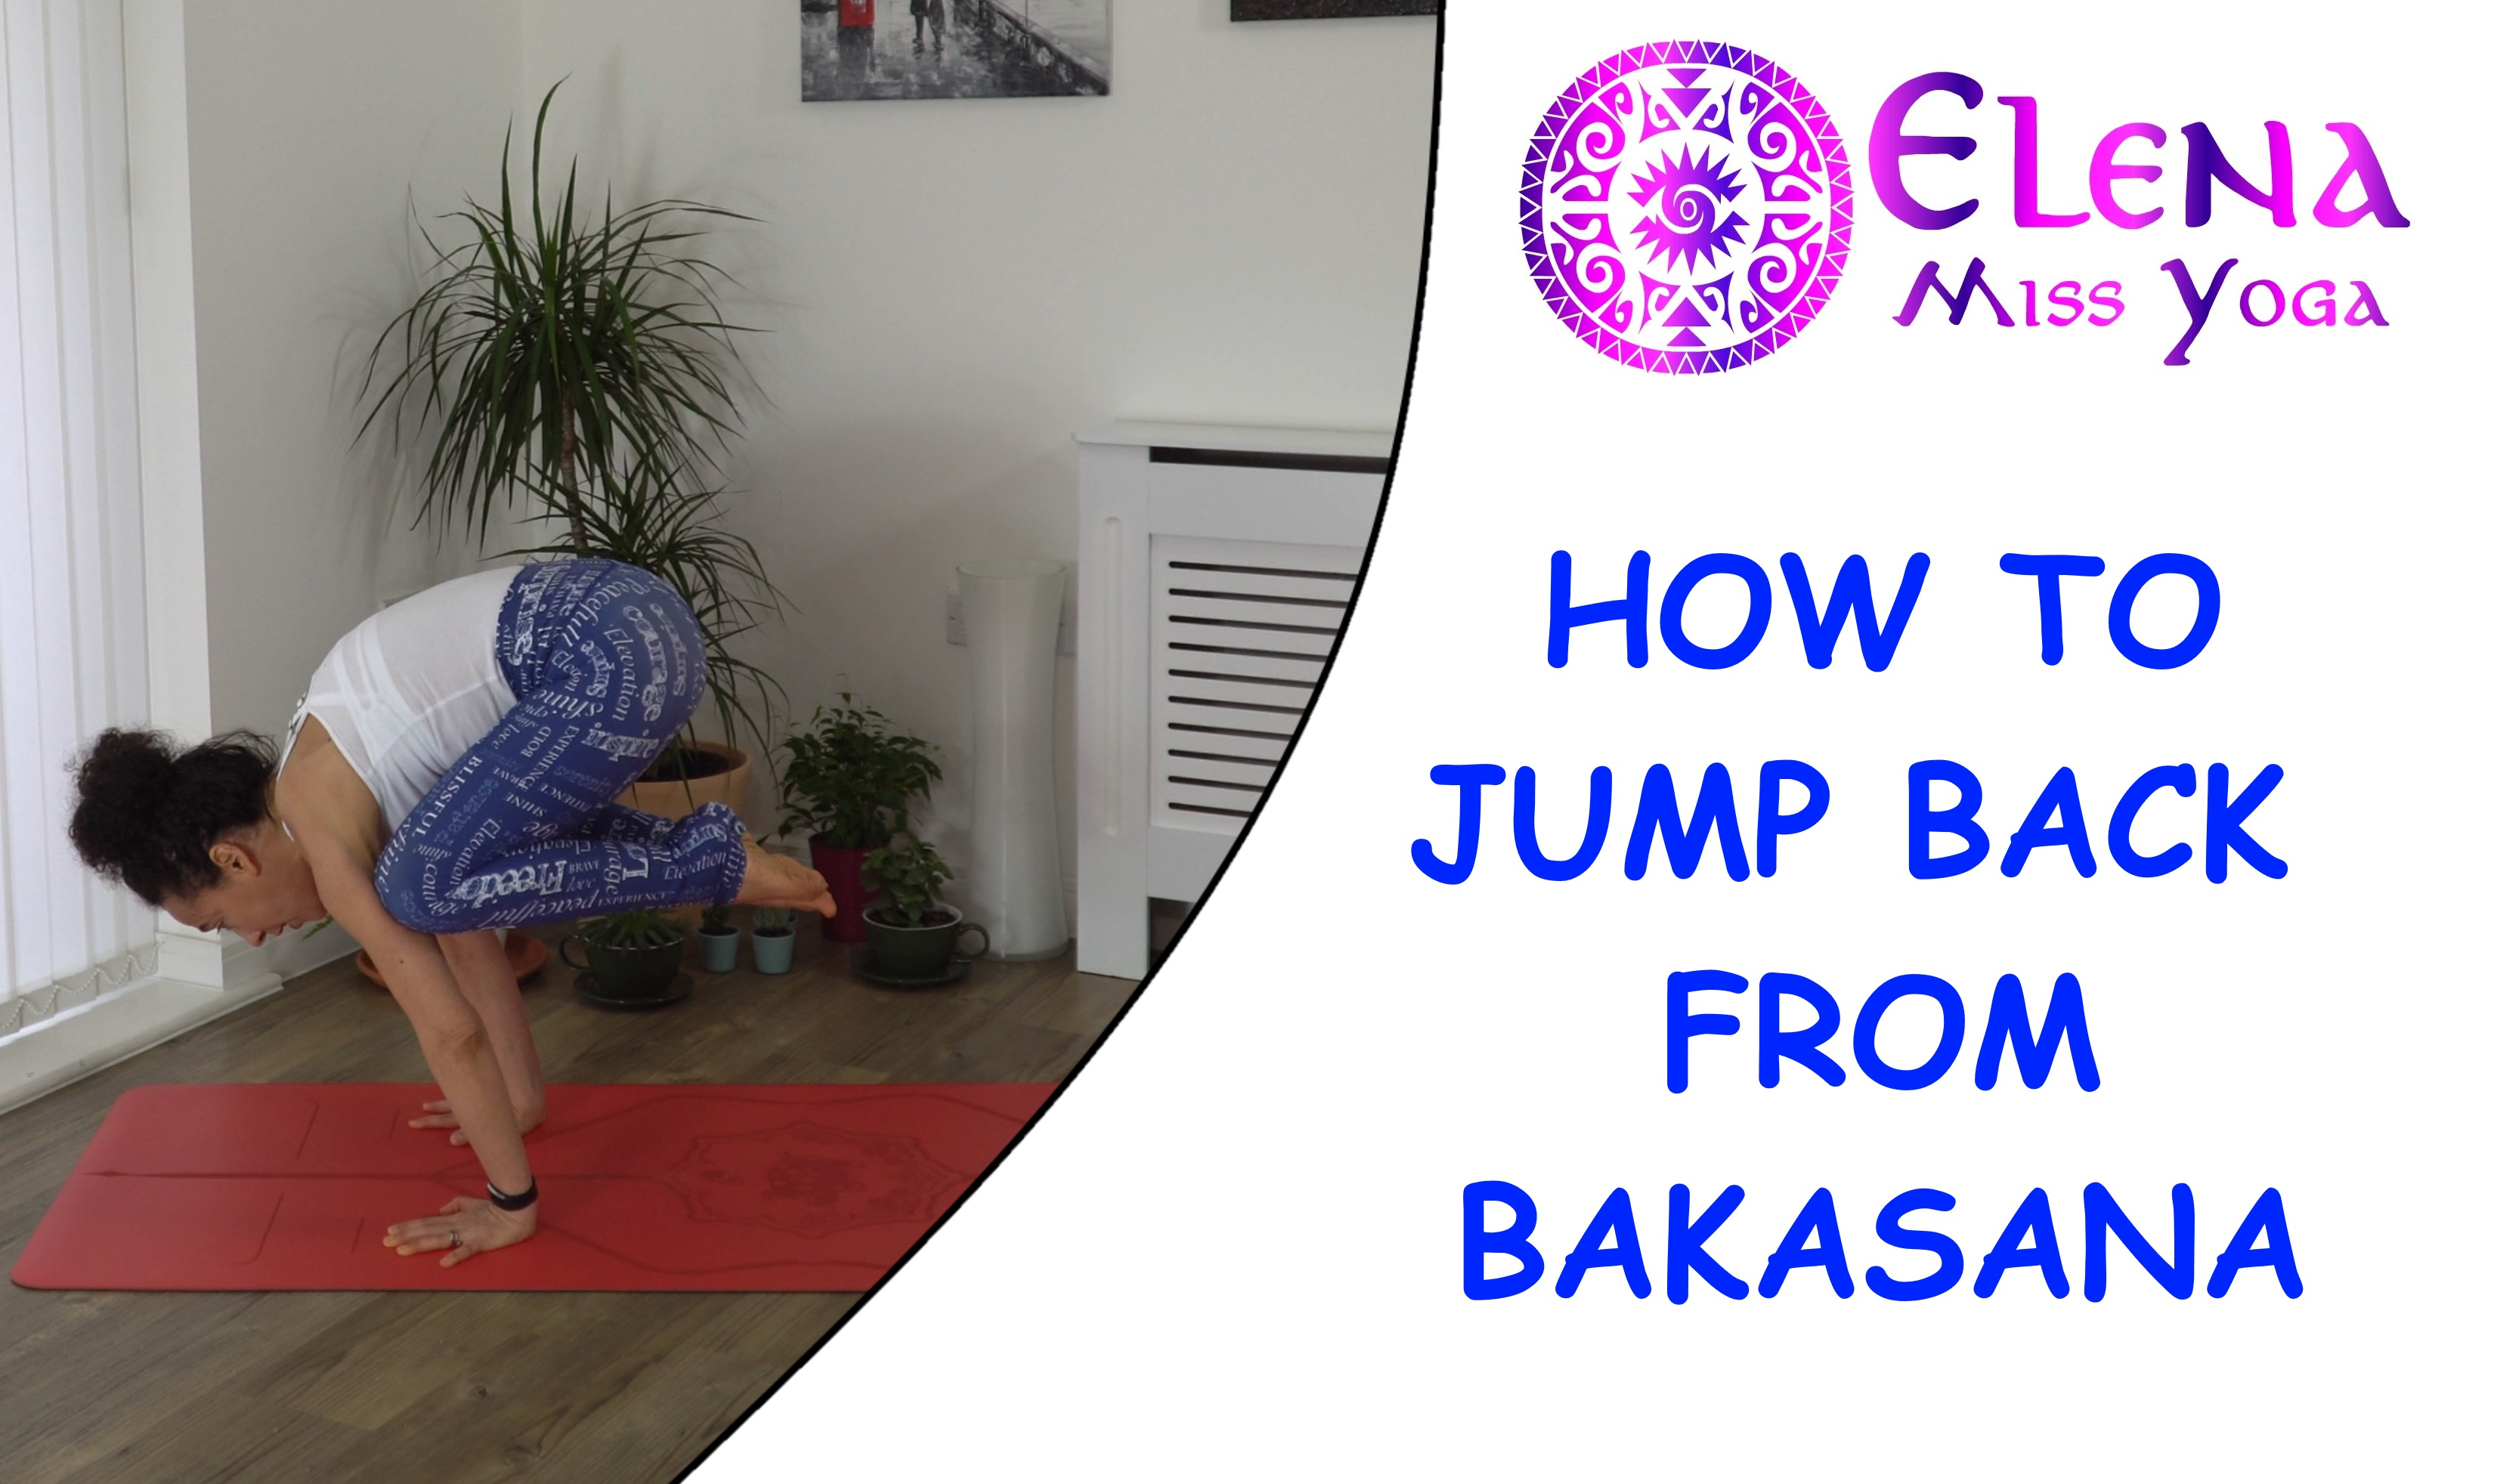 HOW TO JUMP BACK FROM BAKASANA